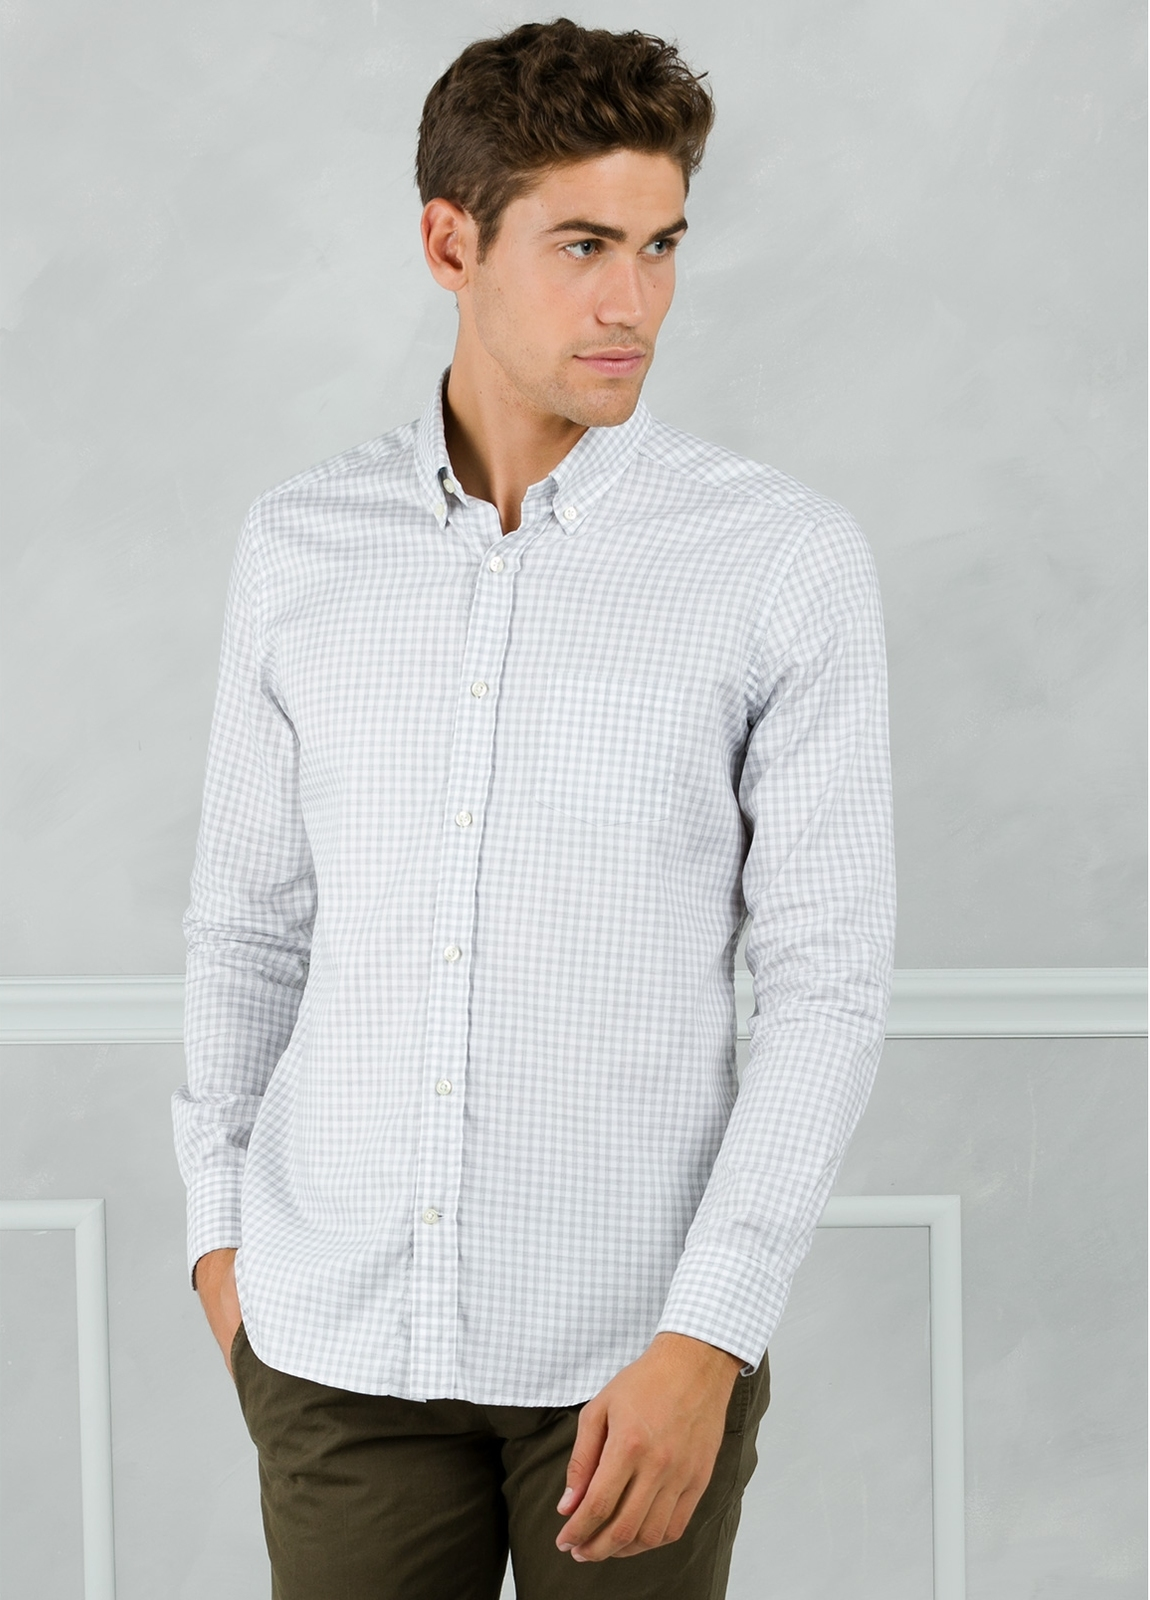 Camisa Leisure Wear REGULAR FIT Modelo BOTTON DOWN con cuadro vichy color gris. 100% Algodón. - Ítem1